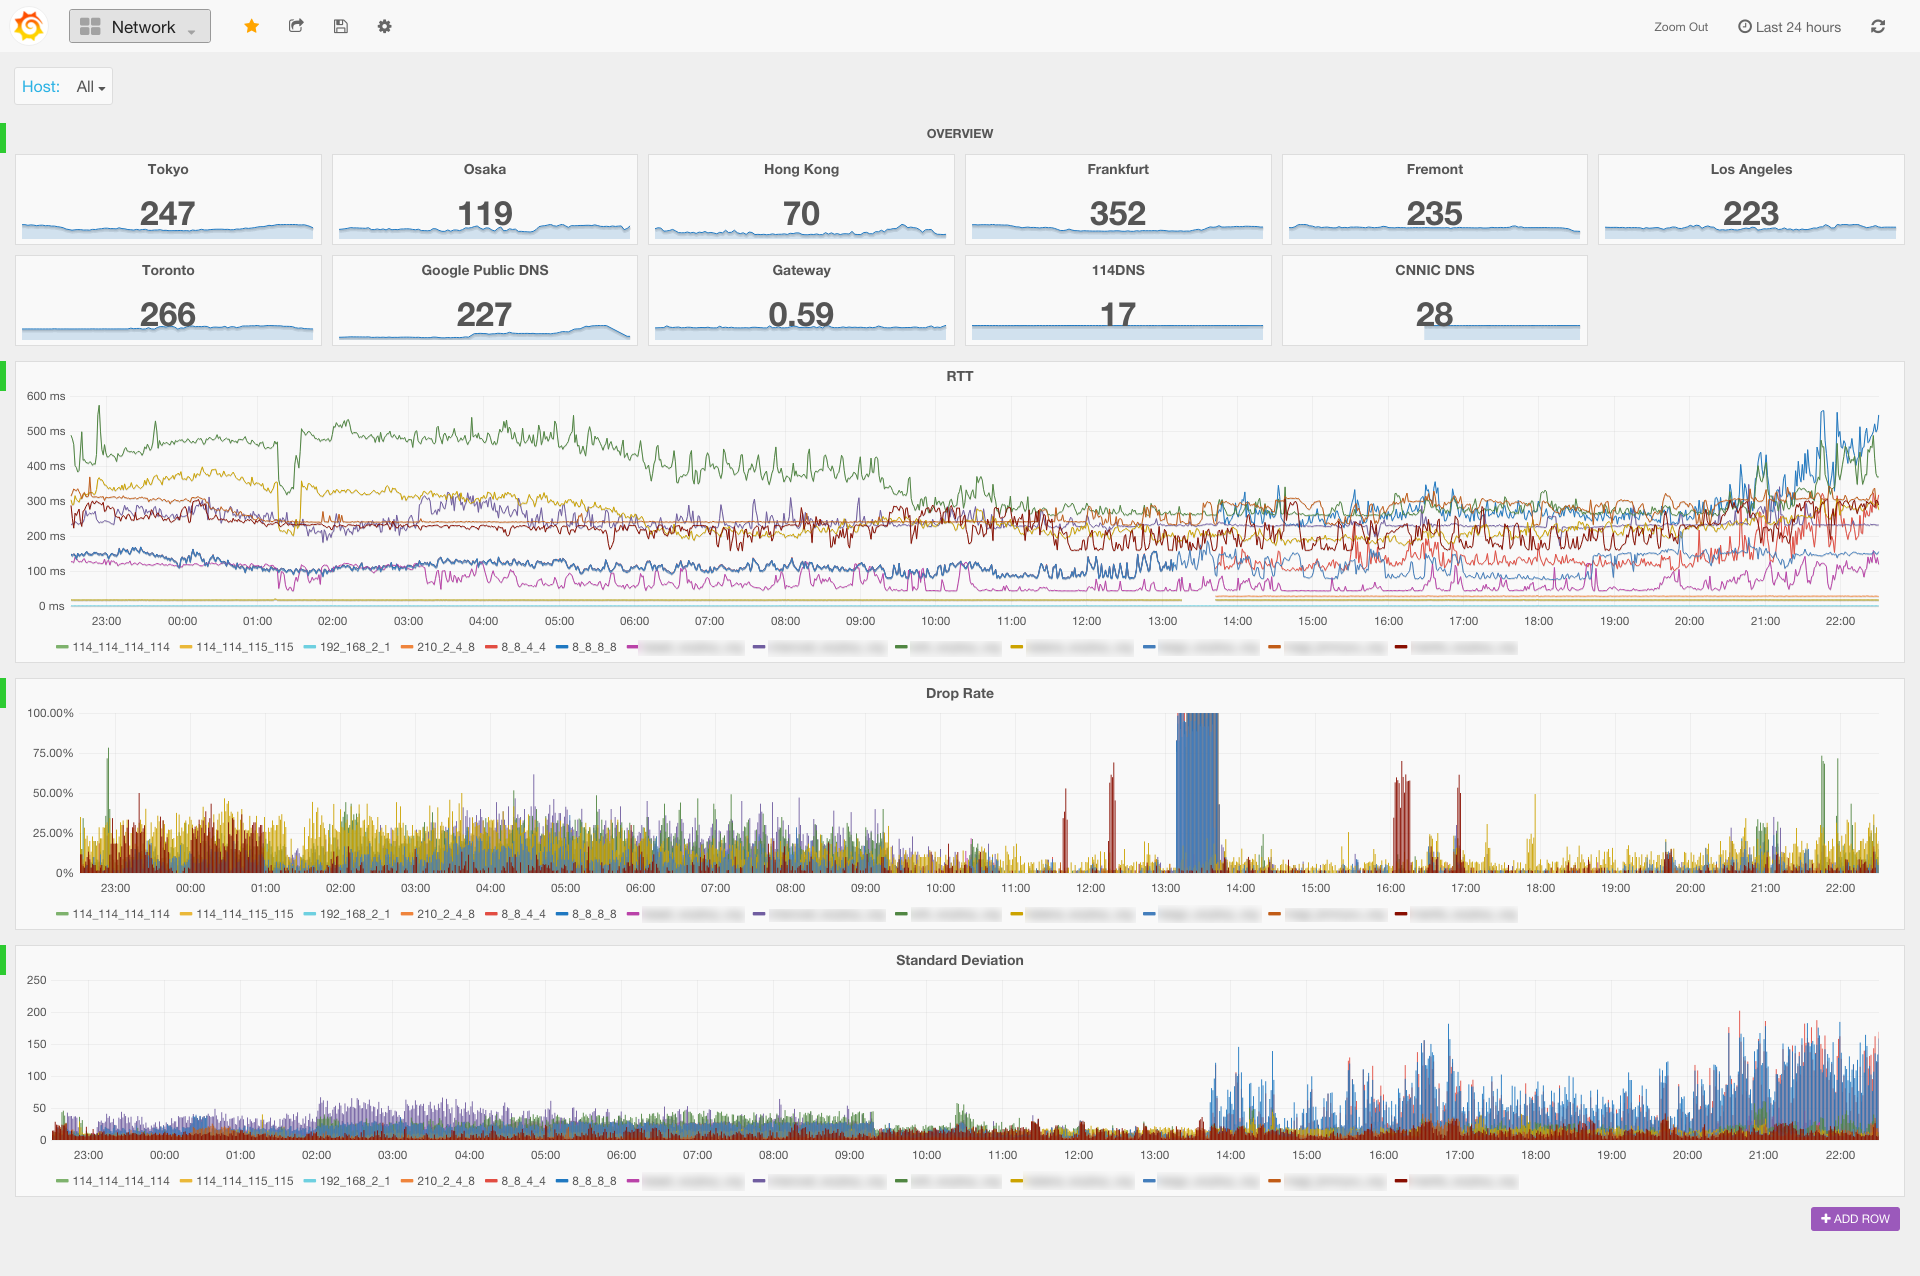 grafana-dashboard-network-fullscreen-20160319-2-blurred